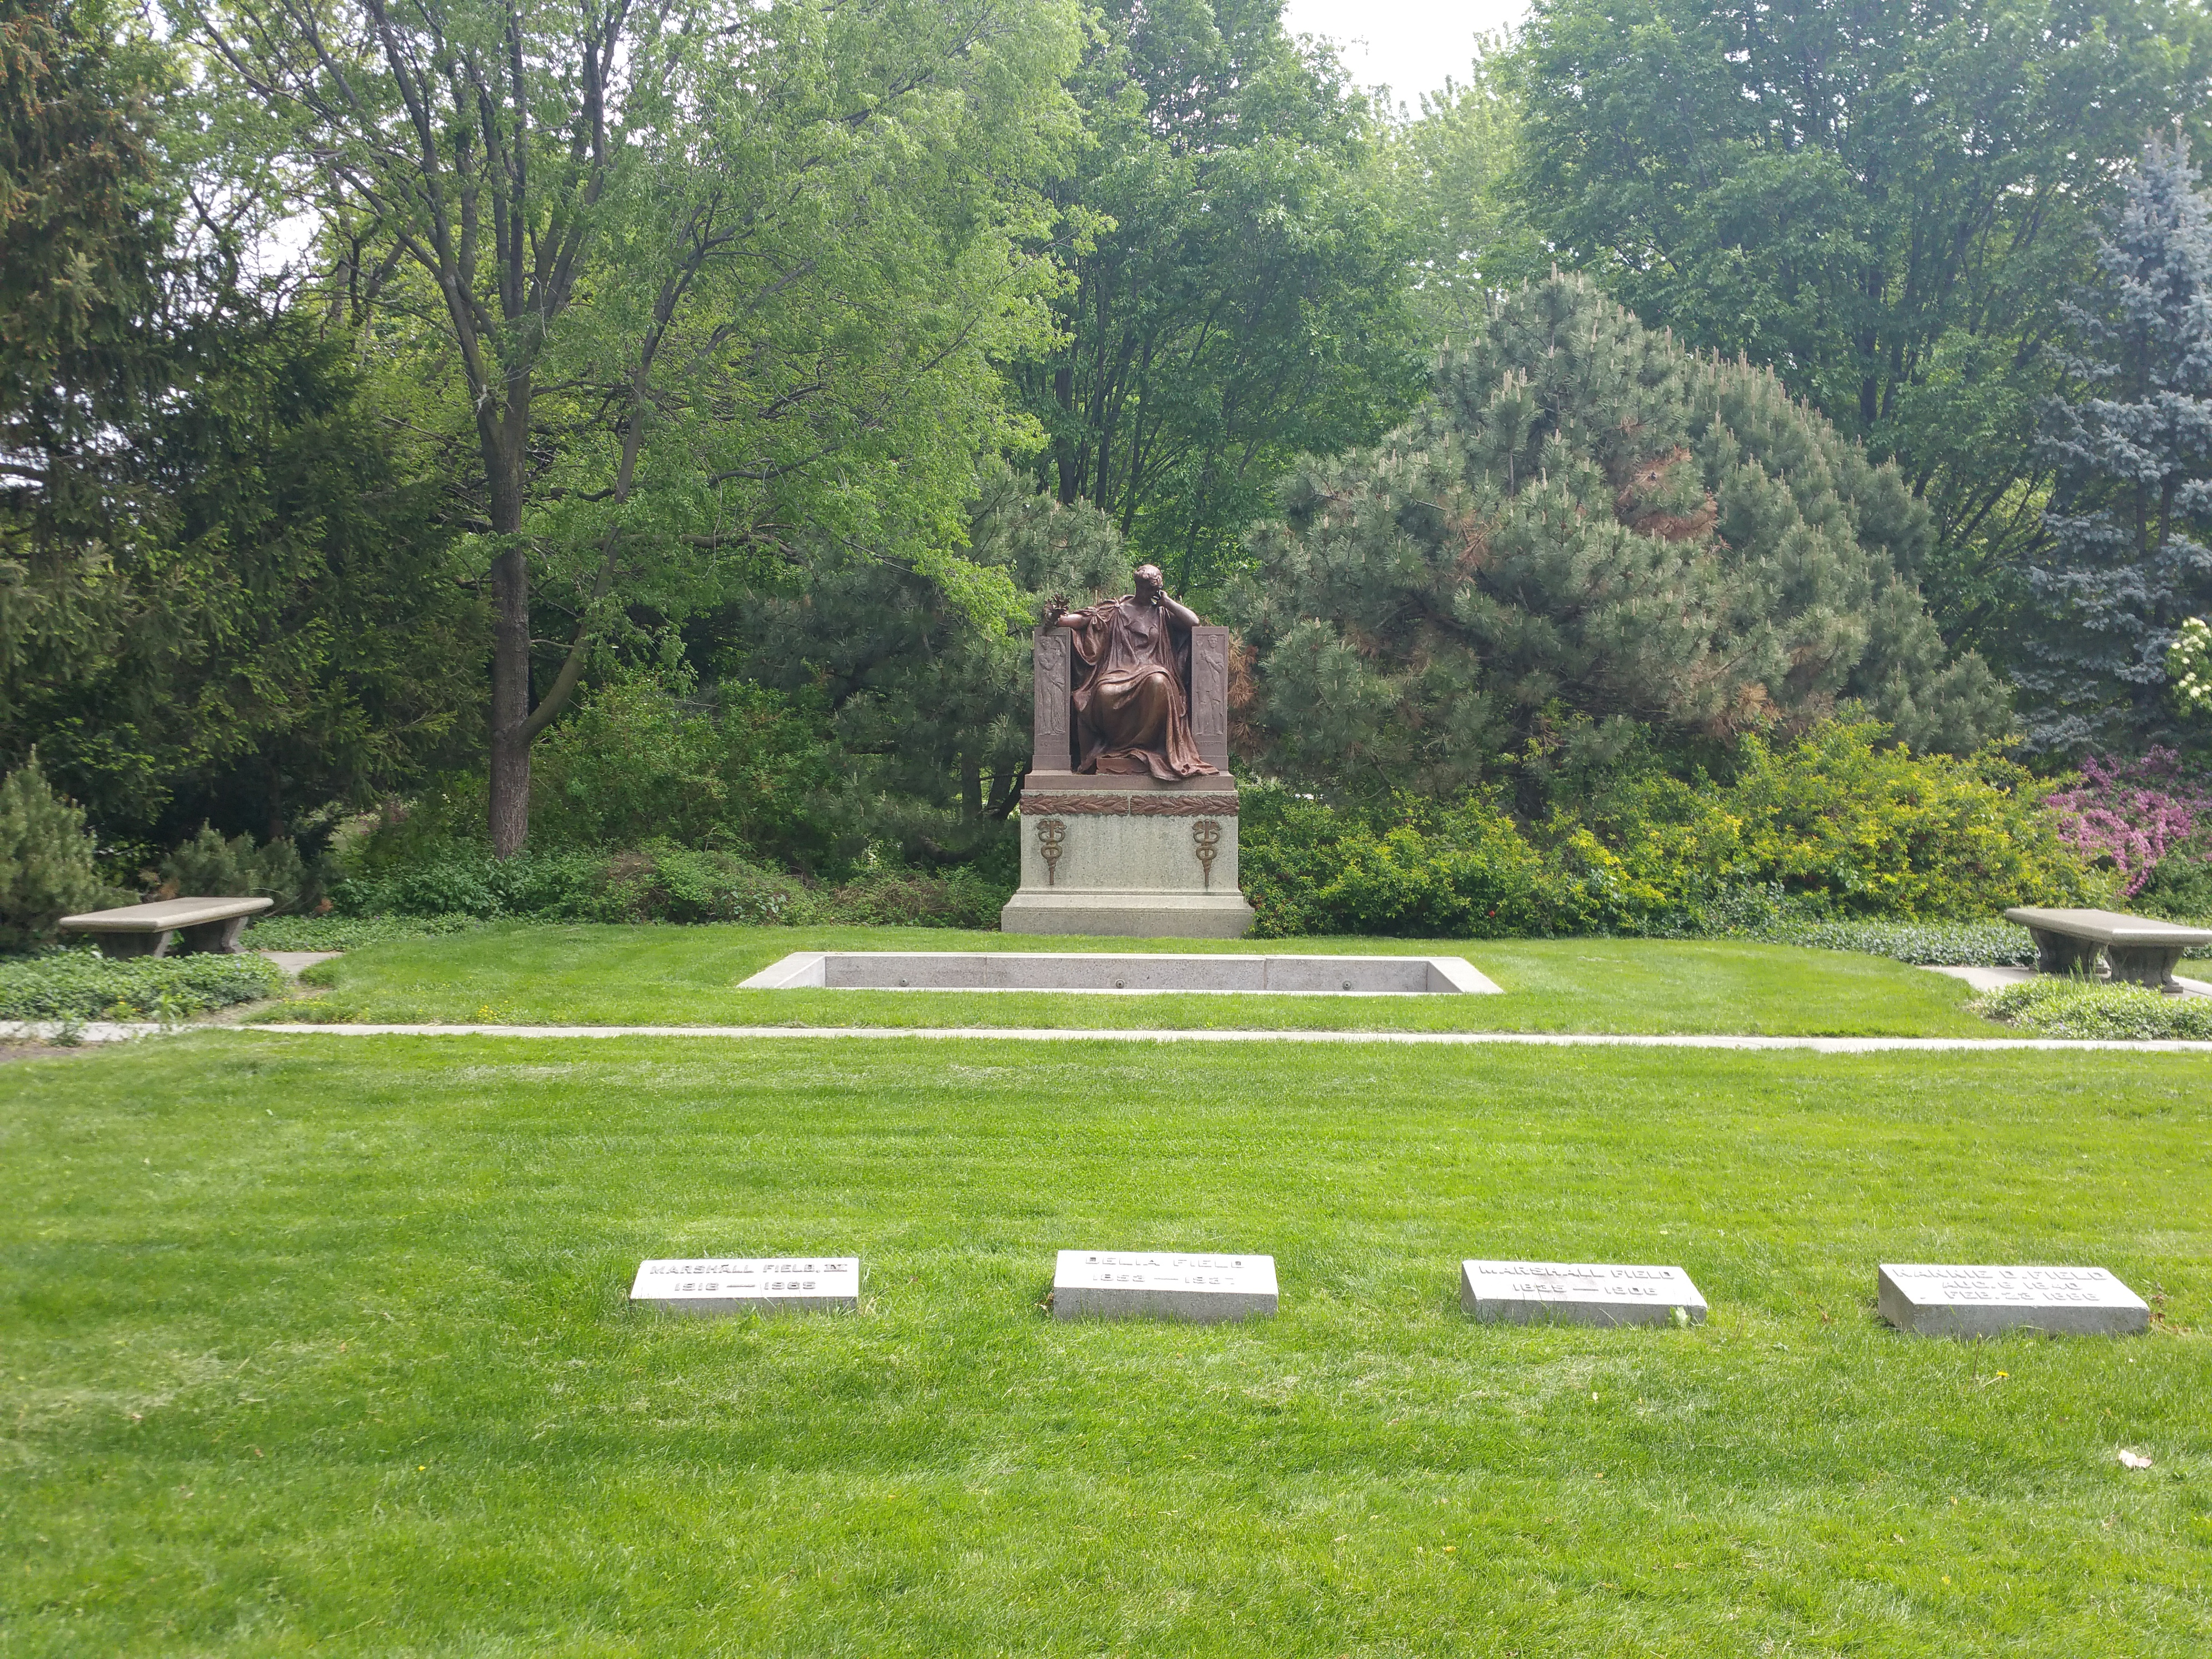 Marshall Field grave site